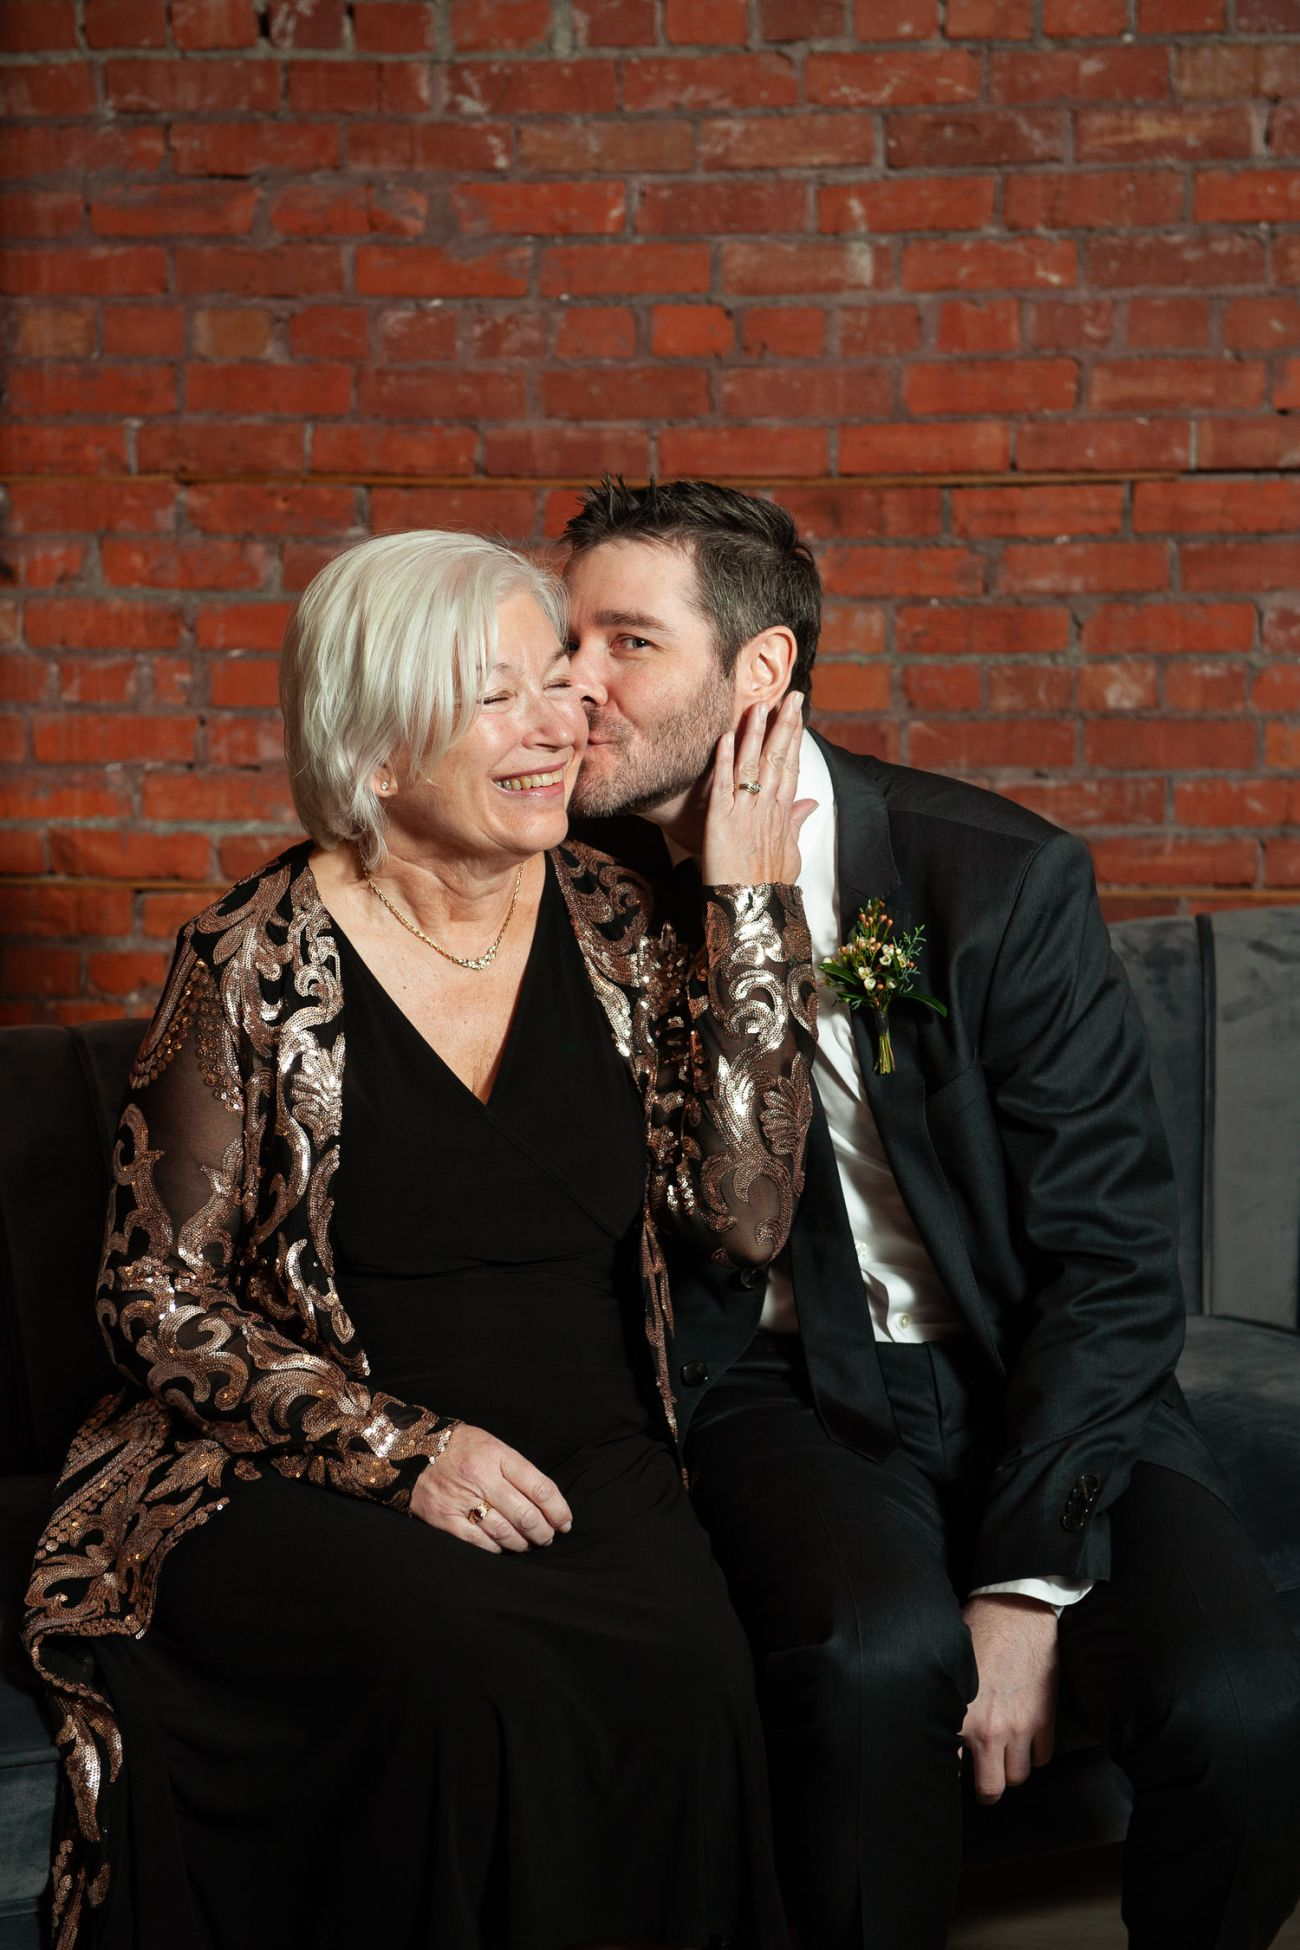 Groom and his Mom during family photos at Venue 308 captured by Tara Whittaker Photography